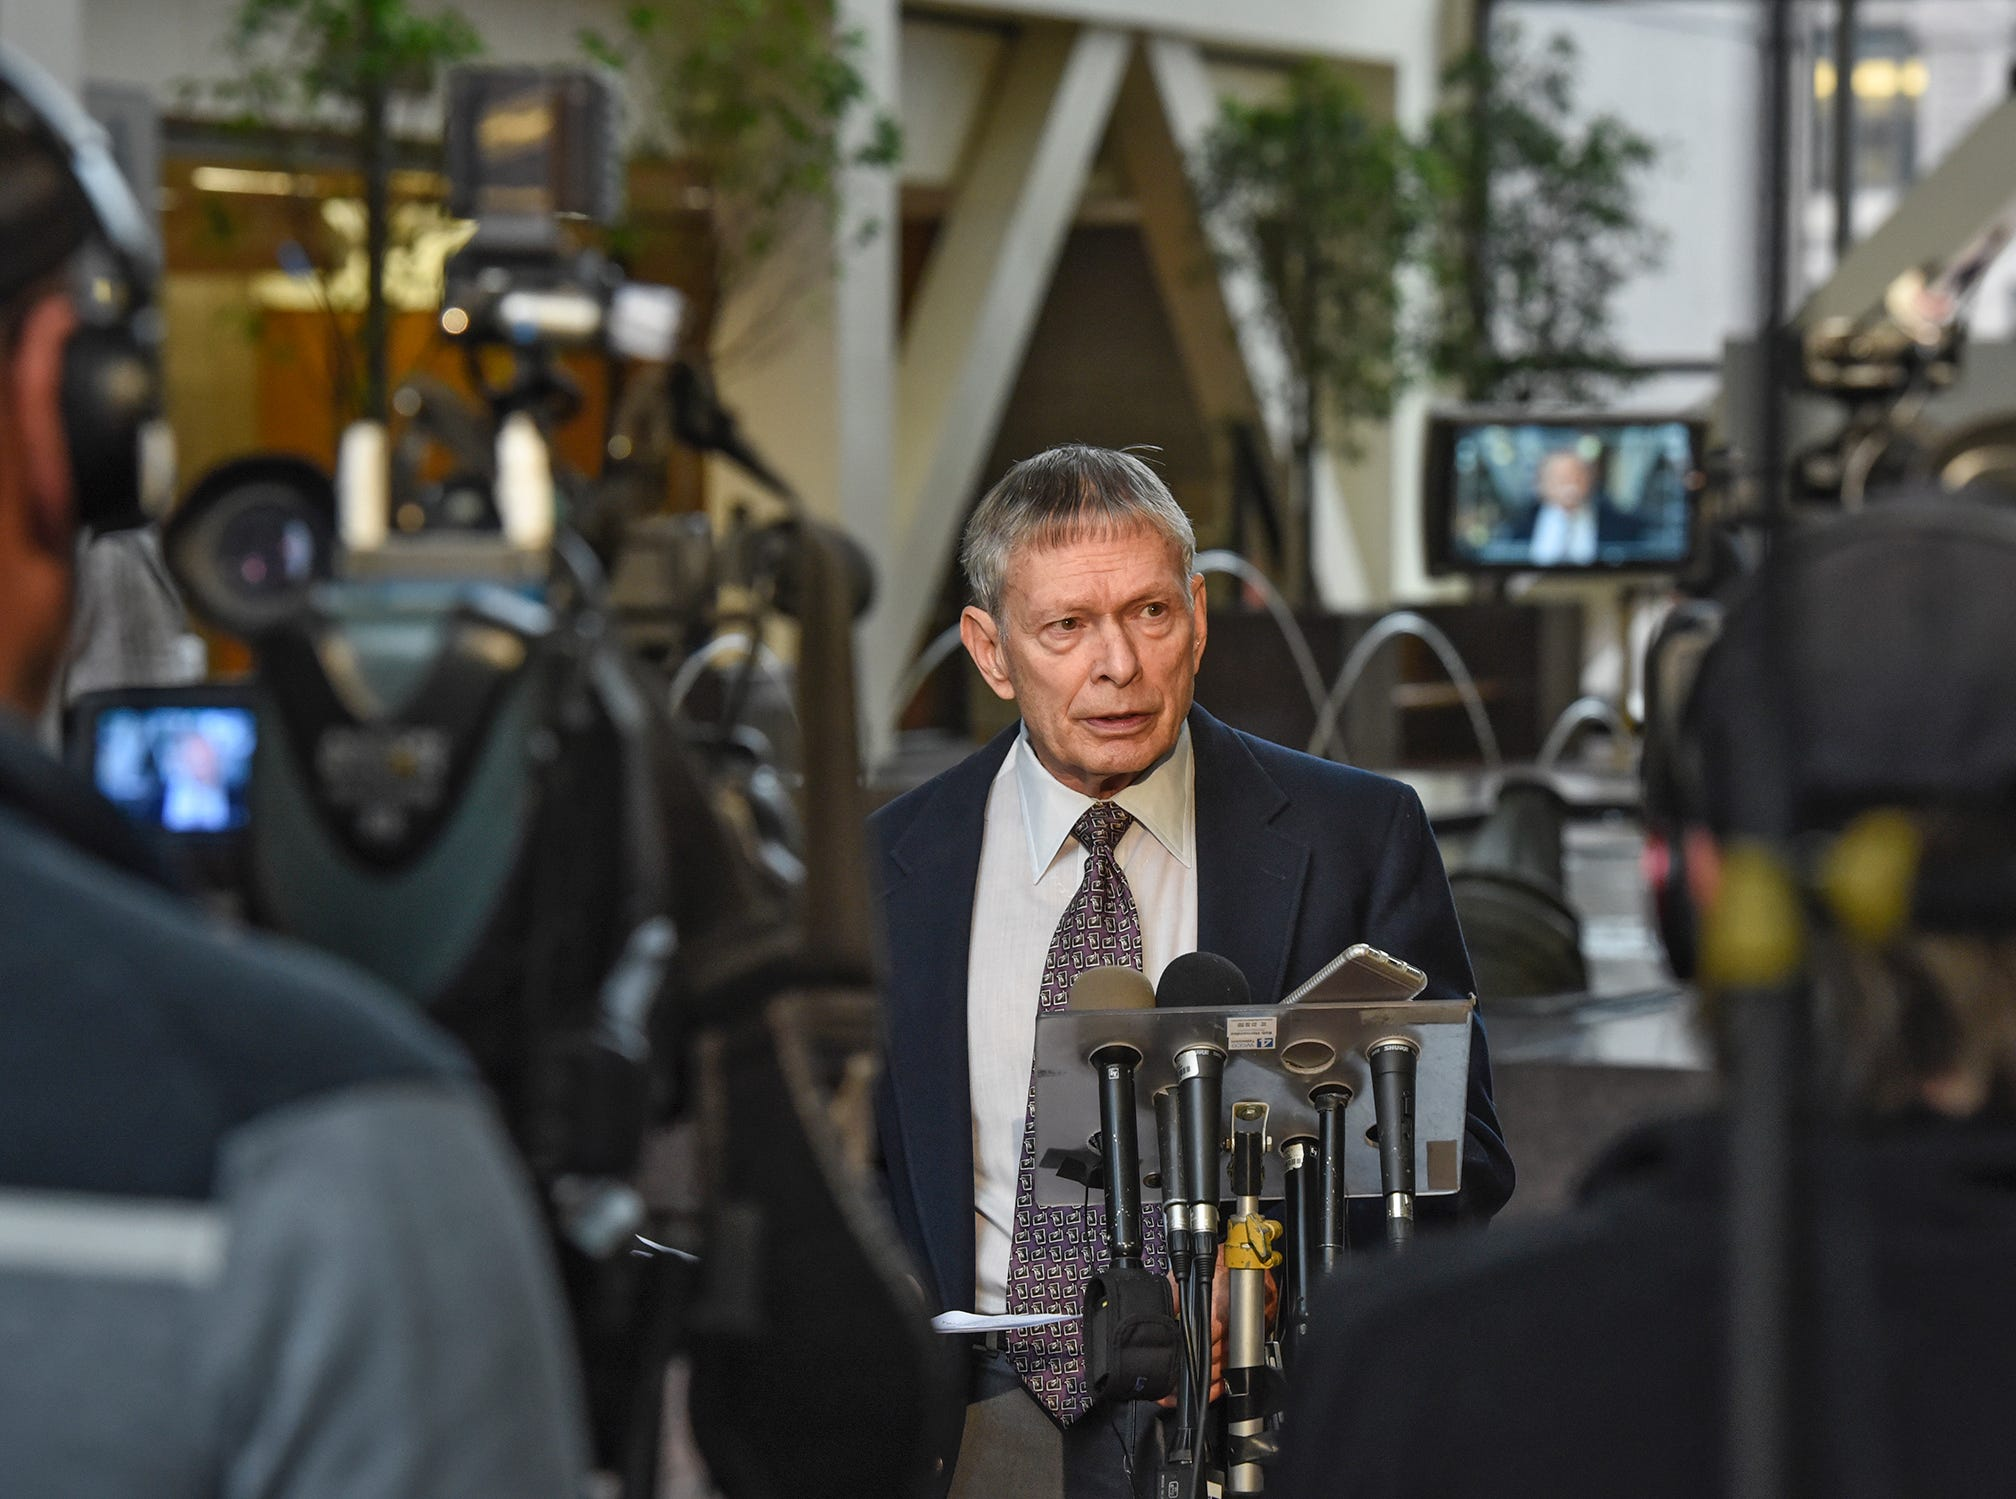 Retired FBI agent Steve Gilkerson speaks to the media during a press conference Tuesday, Oct. 2, at the Hennepin County Government Center in Minneapolis. Gilkerson addressed topics raised in the Jacob Wetterling investigation following the release of investigative files last week.